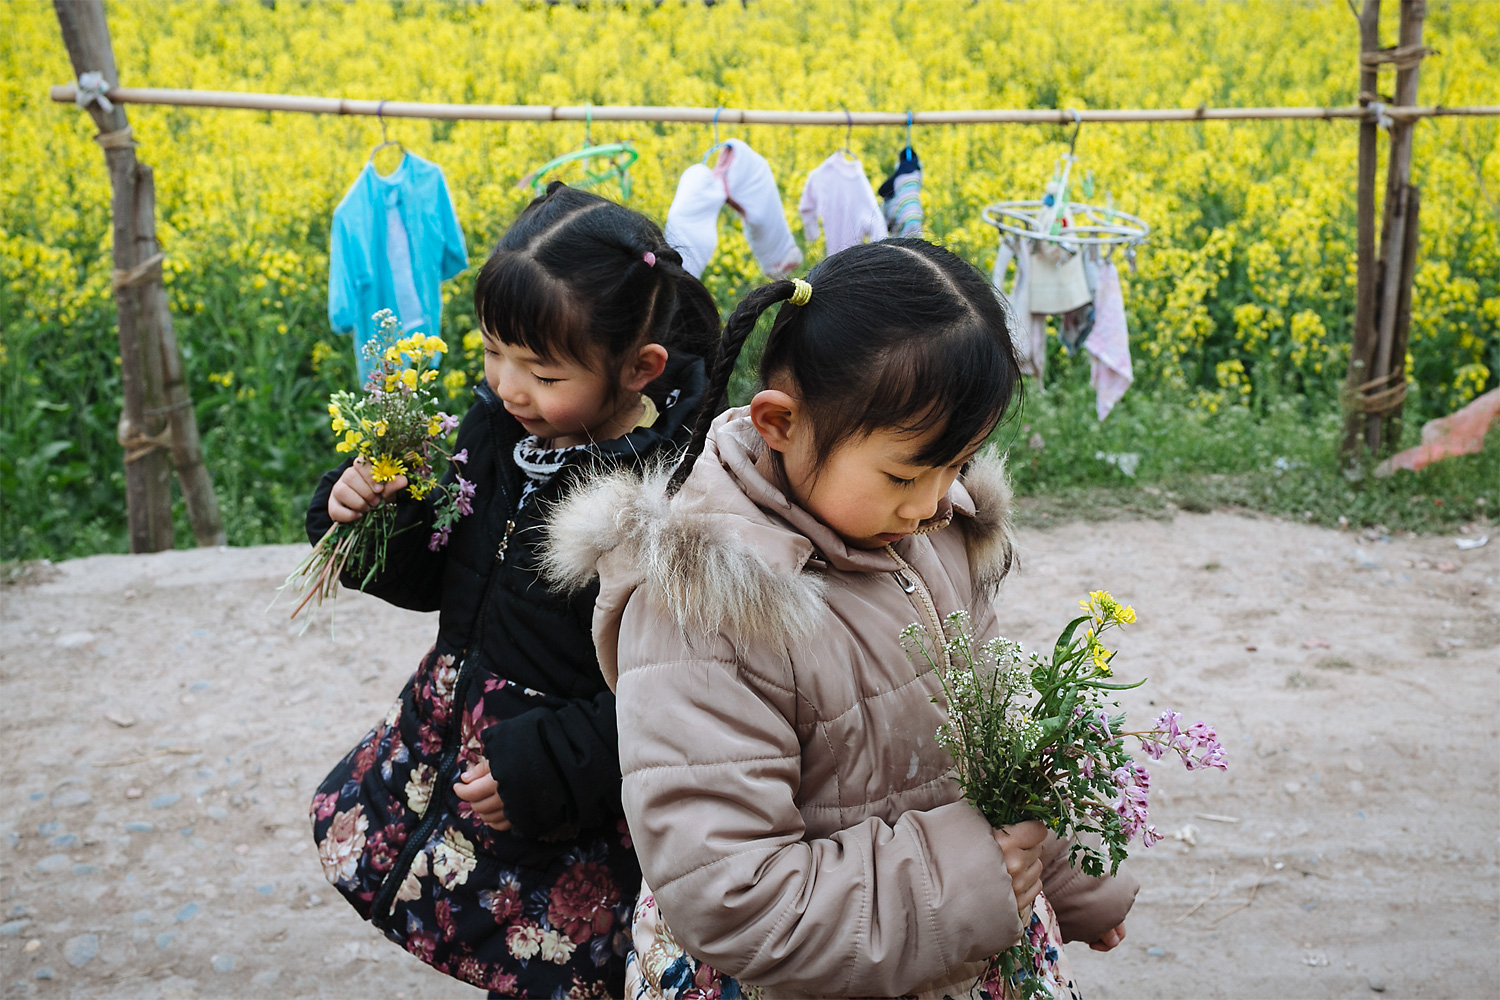 Sisters Mengmeng, four, and Siyao, six, pick wildflower bouquets beside a blooming rapeseed field in their hometown, Longjing village, Jintang county, Sichuan province, in March 2015. Four months earlier, after years of working in the coal mines, their father, Li Mingjin, was diagnosed with cancer.